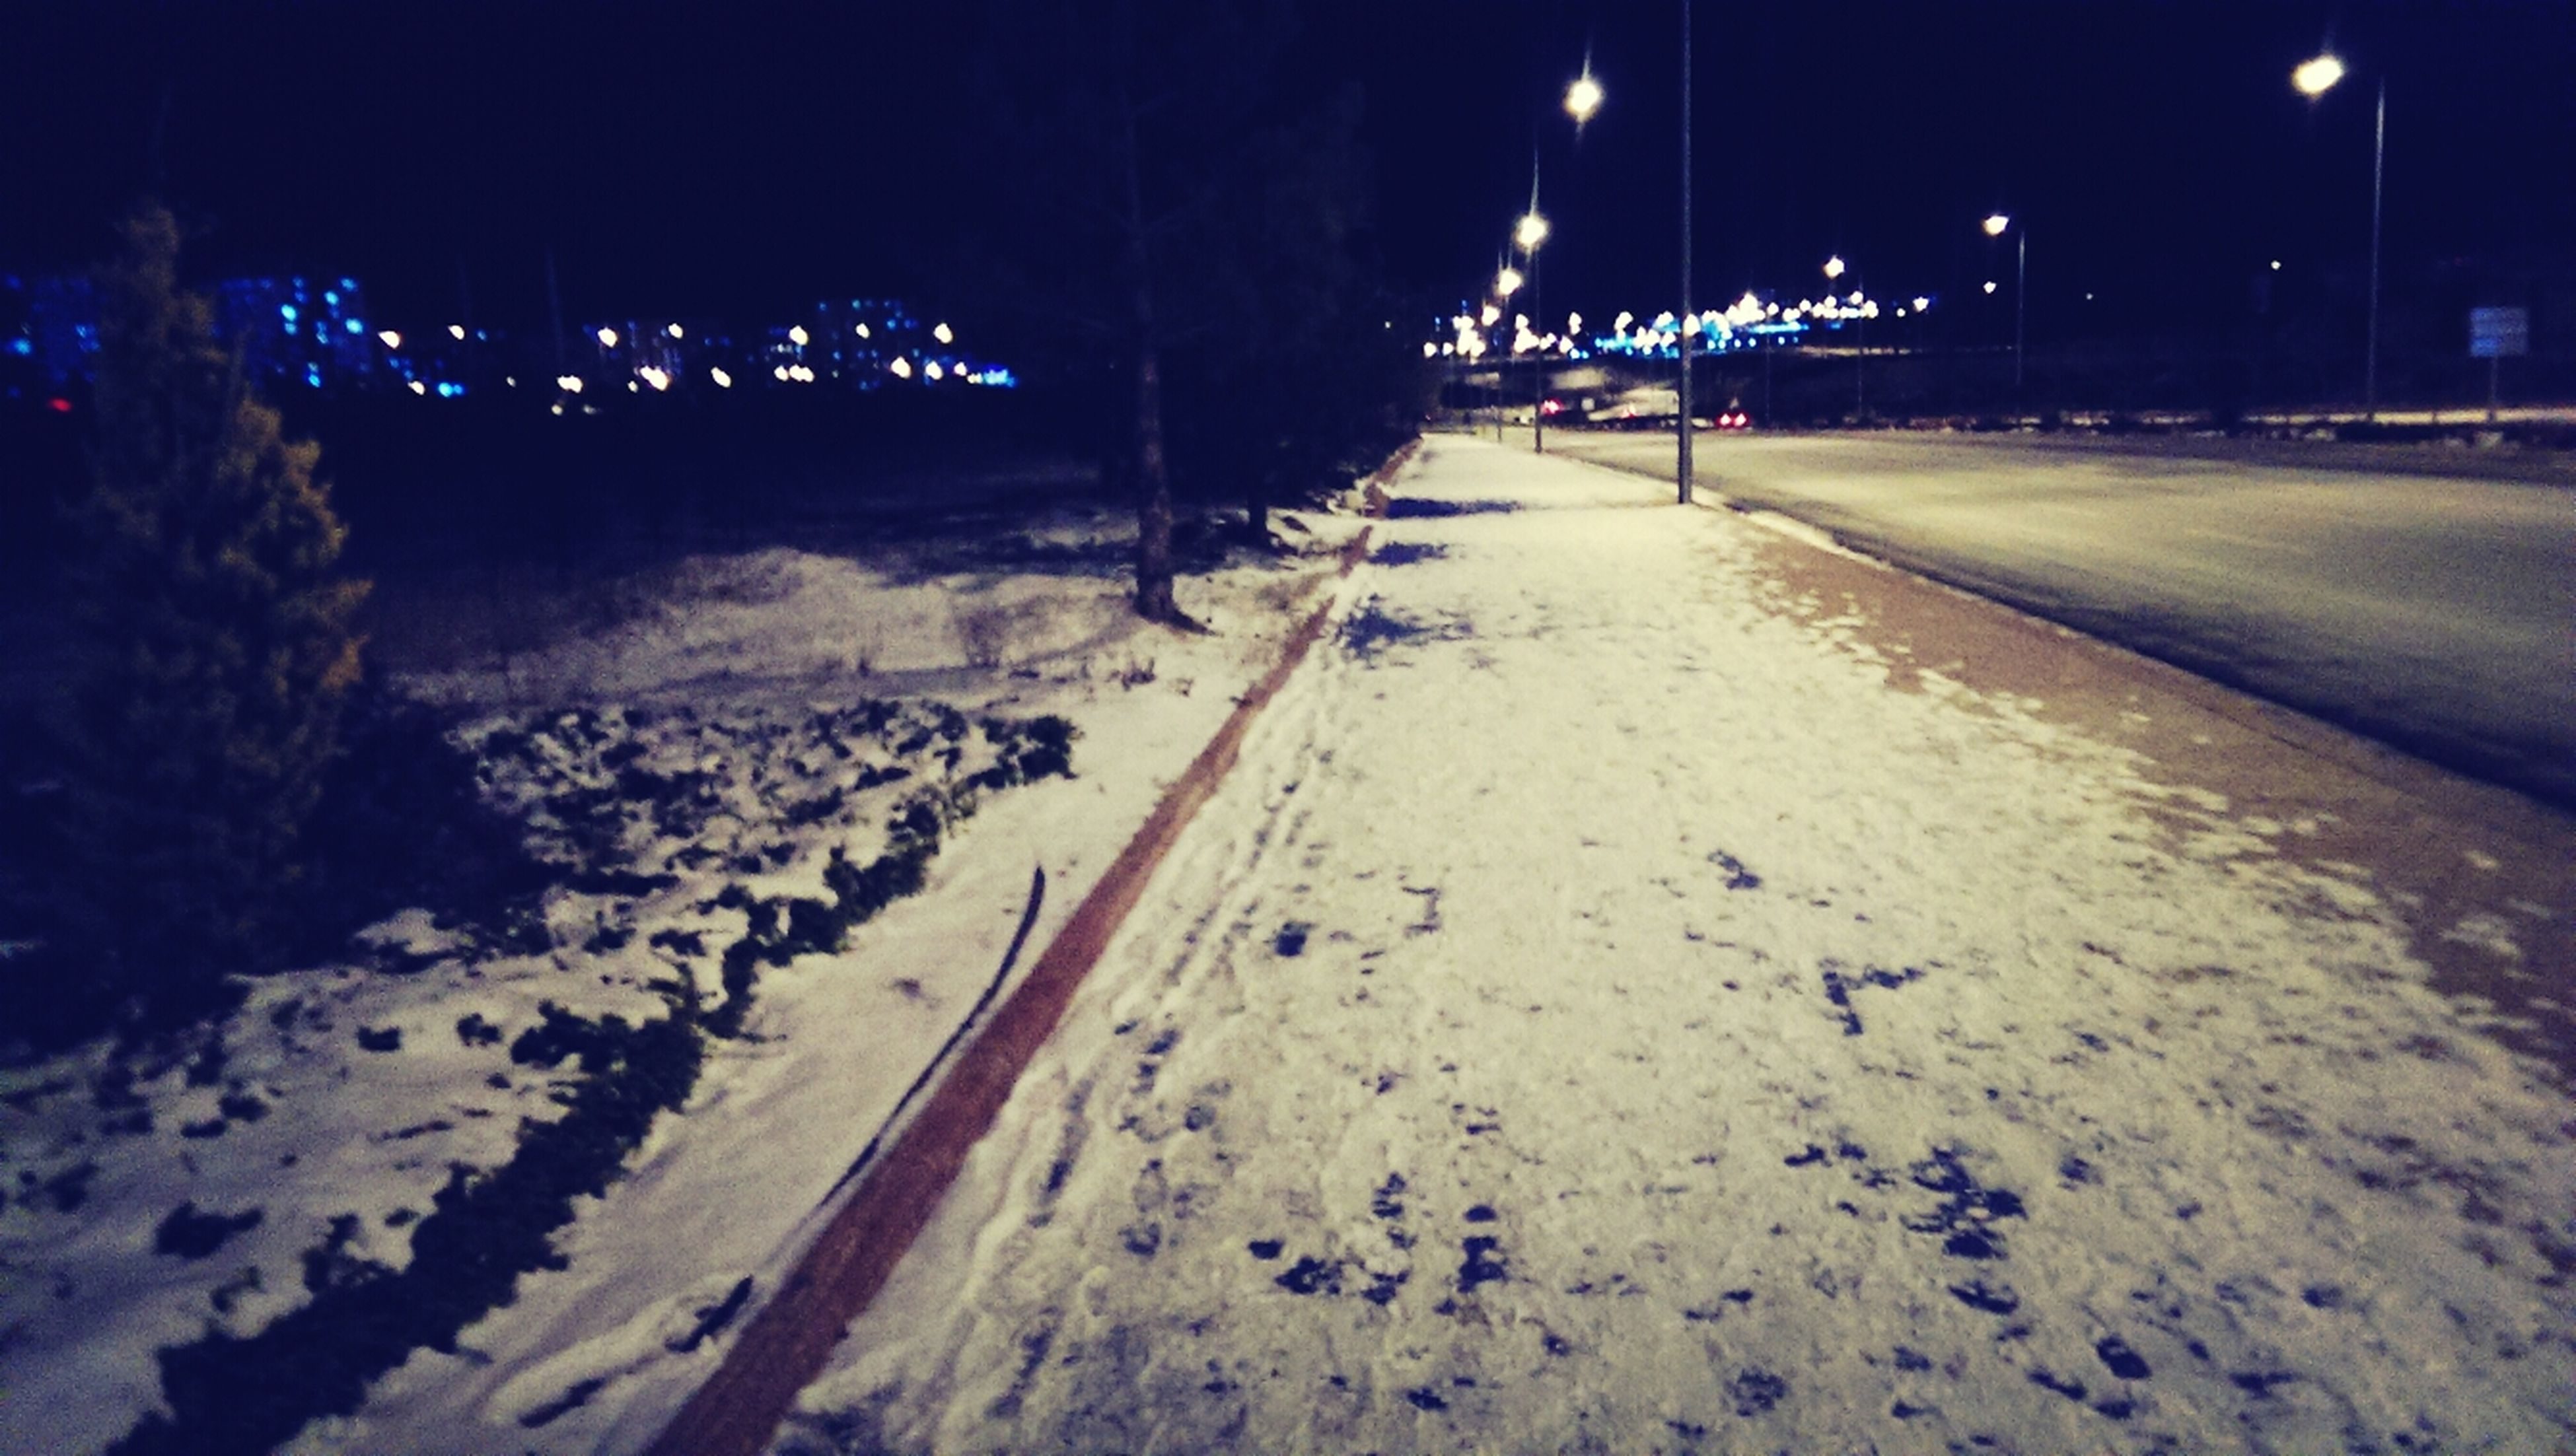 night, illuminated, the way forward, transportation, street light, road, diminishing perspective, snow, street, winter, vanishing point, lighting equipment, cold temperature, road marking, outdoors, incidental people, built structure, empty, architecture, building exterior